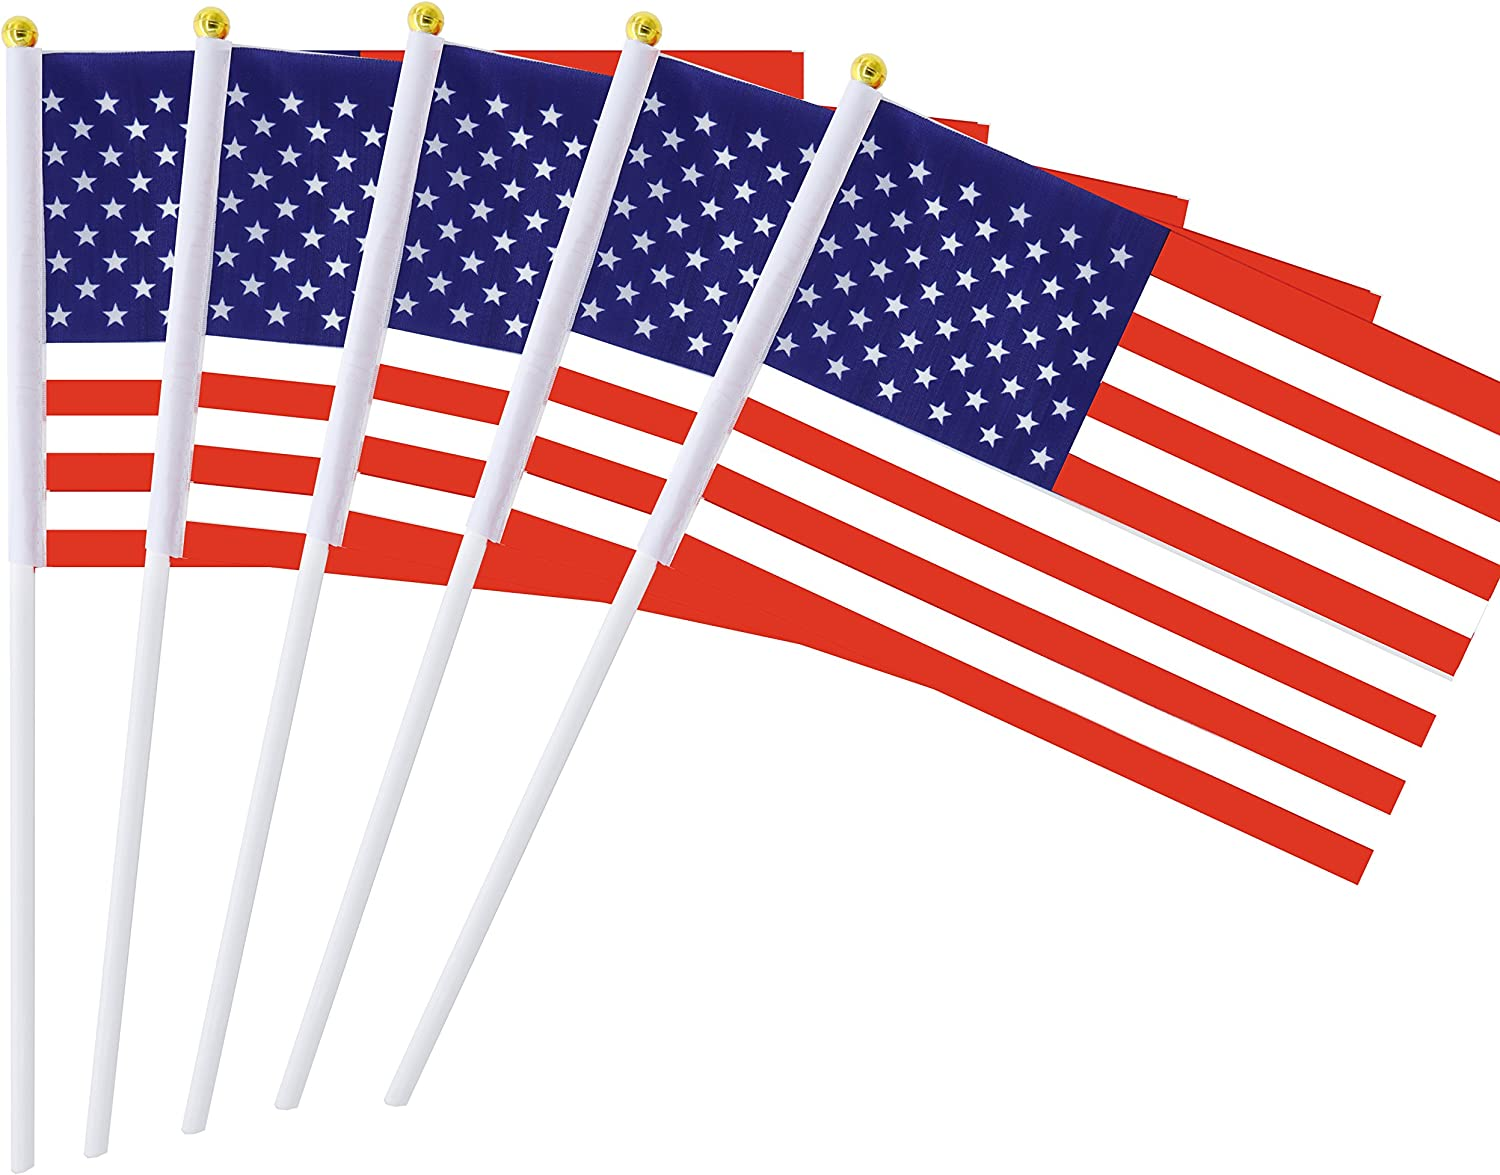 US Stick flag USA Stick flag American Stick Flag Small Mini Flag 50 Pack Hand Held Flag Country National International Flags, Party Decorations Supplies For Parades,World Cup, 4th Of July,Celebration